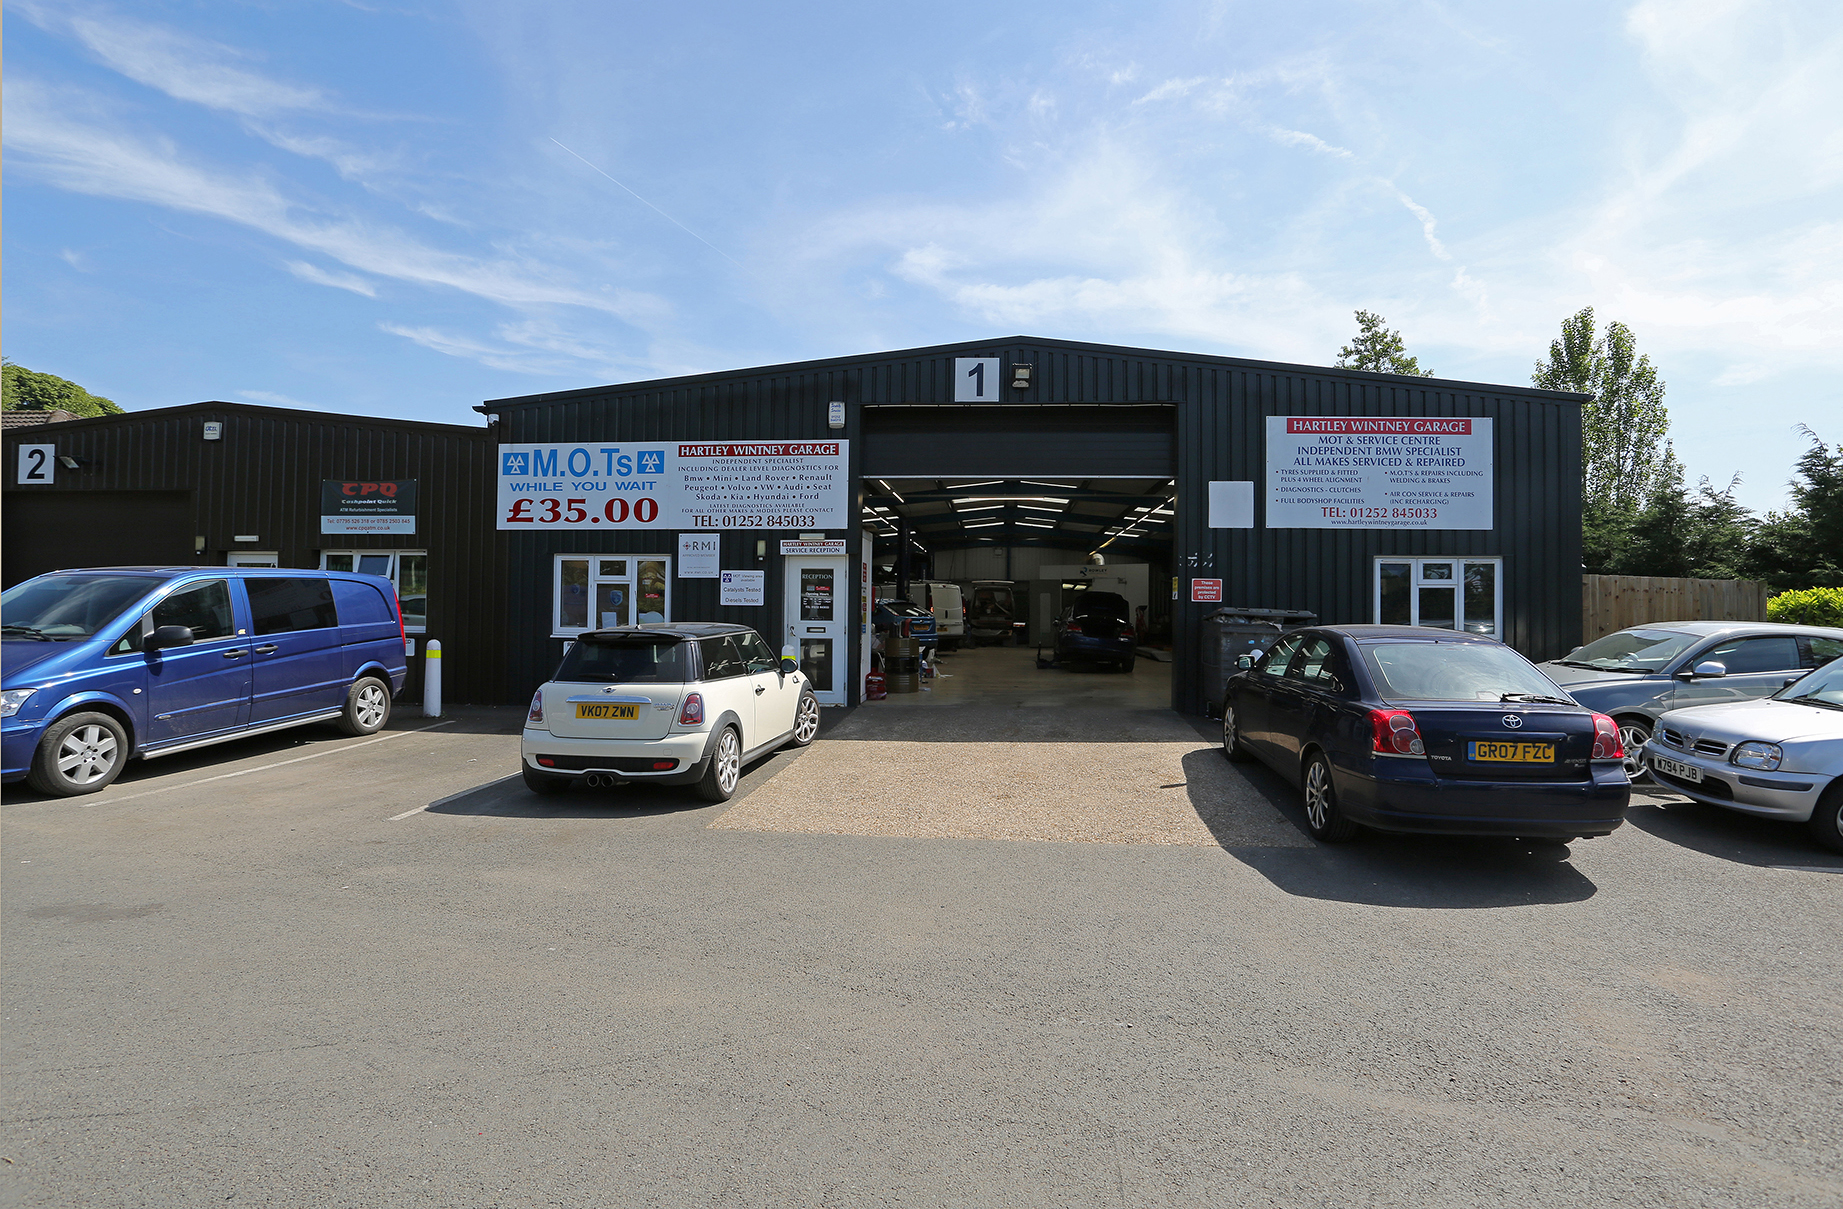 Hartley Wintney Garage thrives at Winkworth Business Park